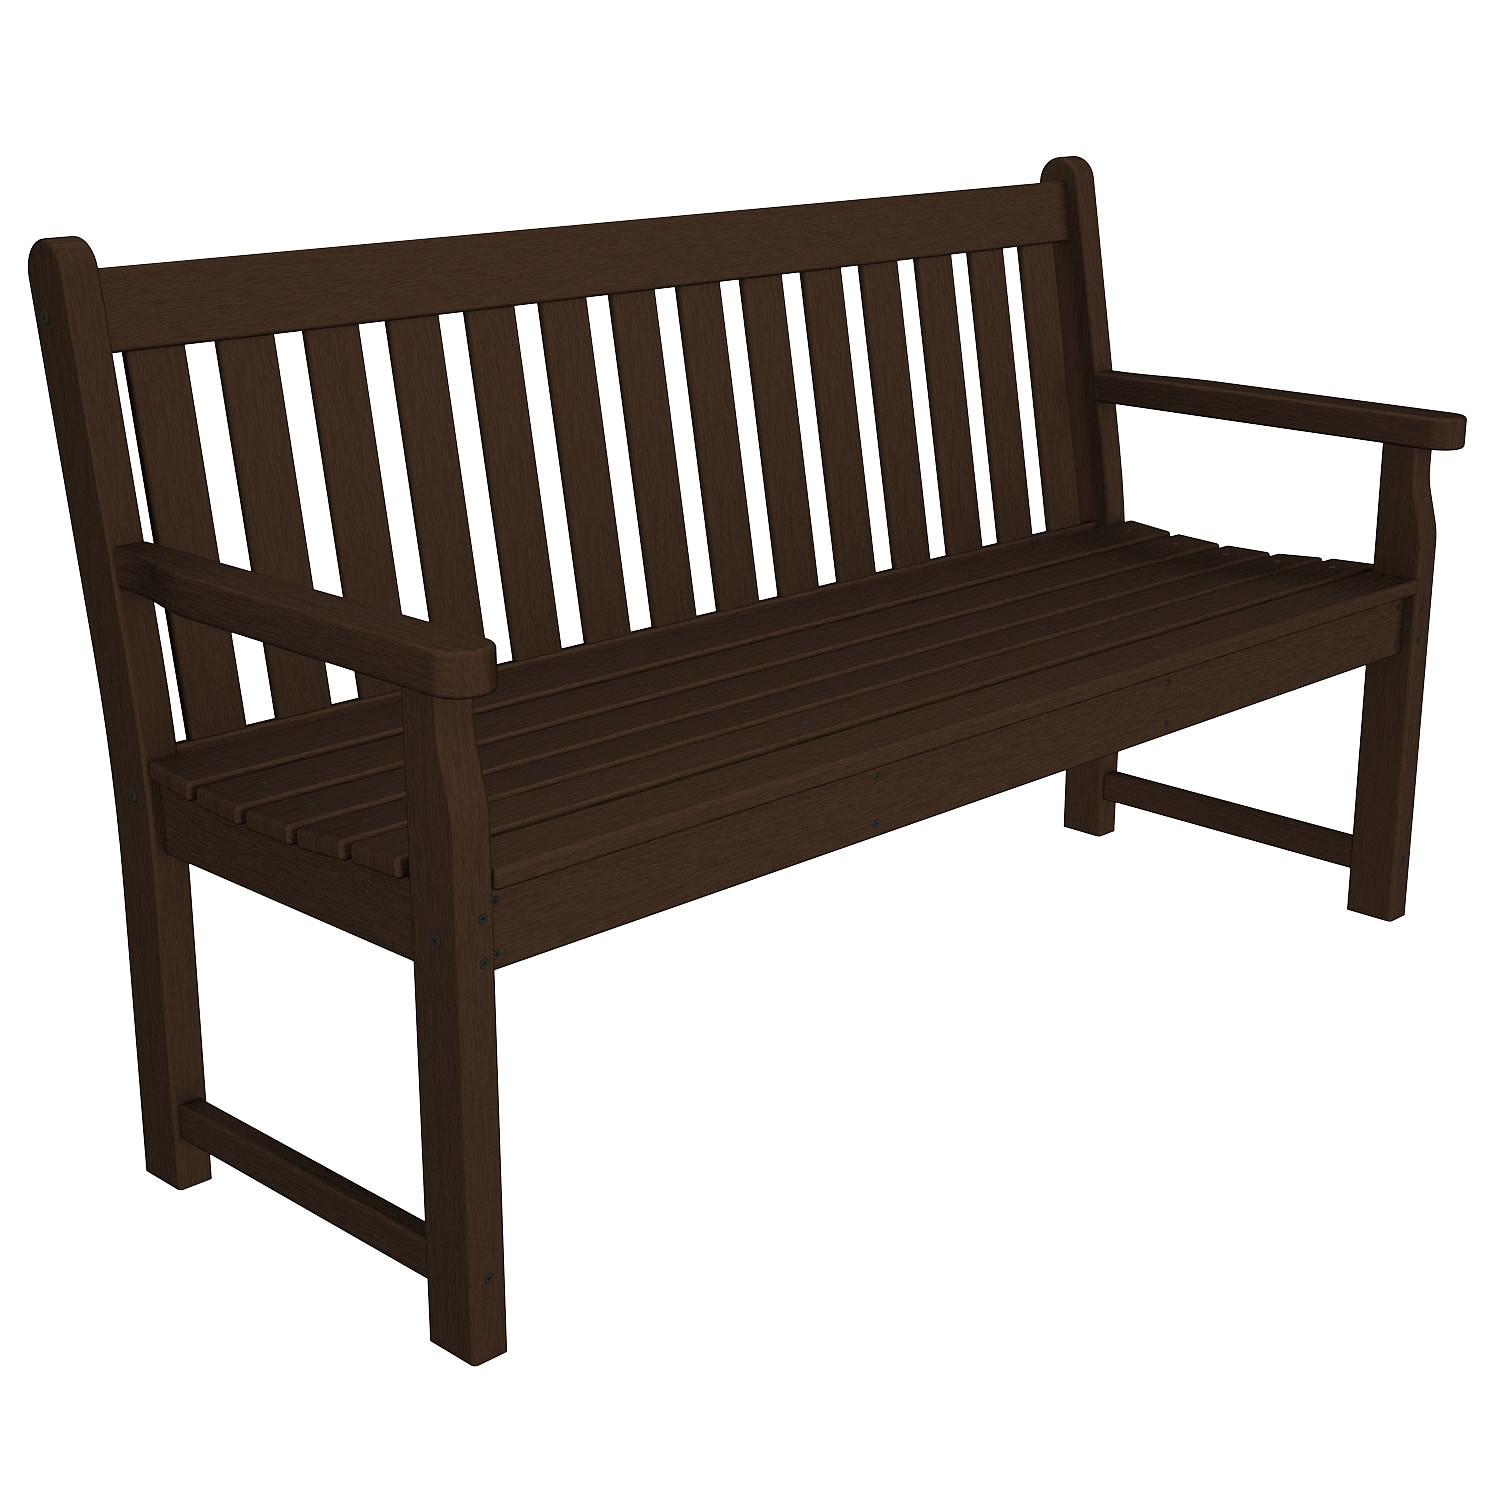 Polywood traditional garden 60 in bench traditional garden polywood outdoor furniture Polywood bench